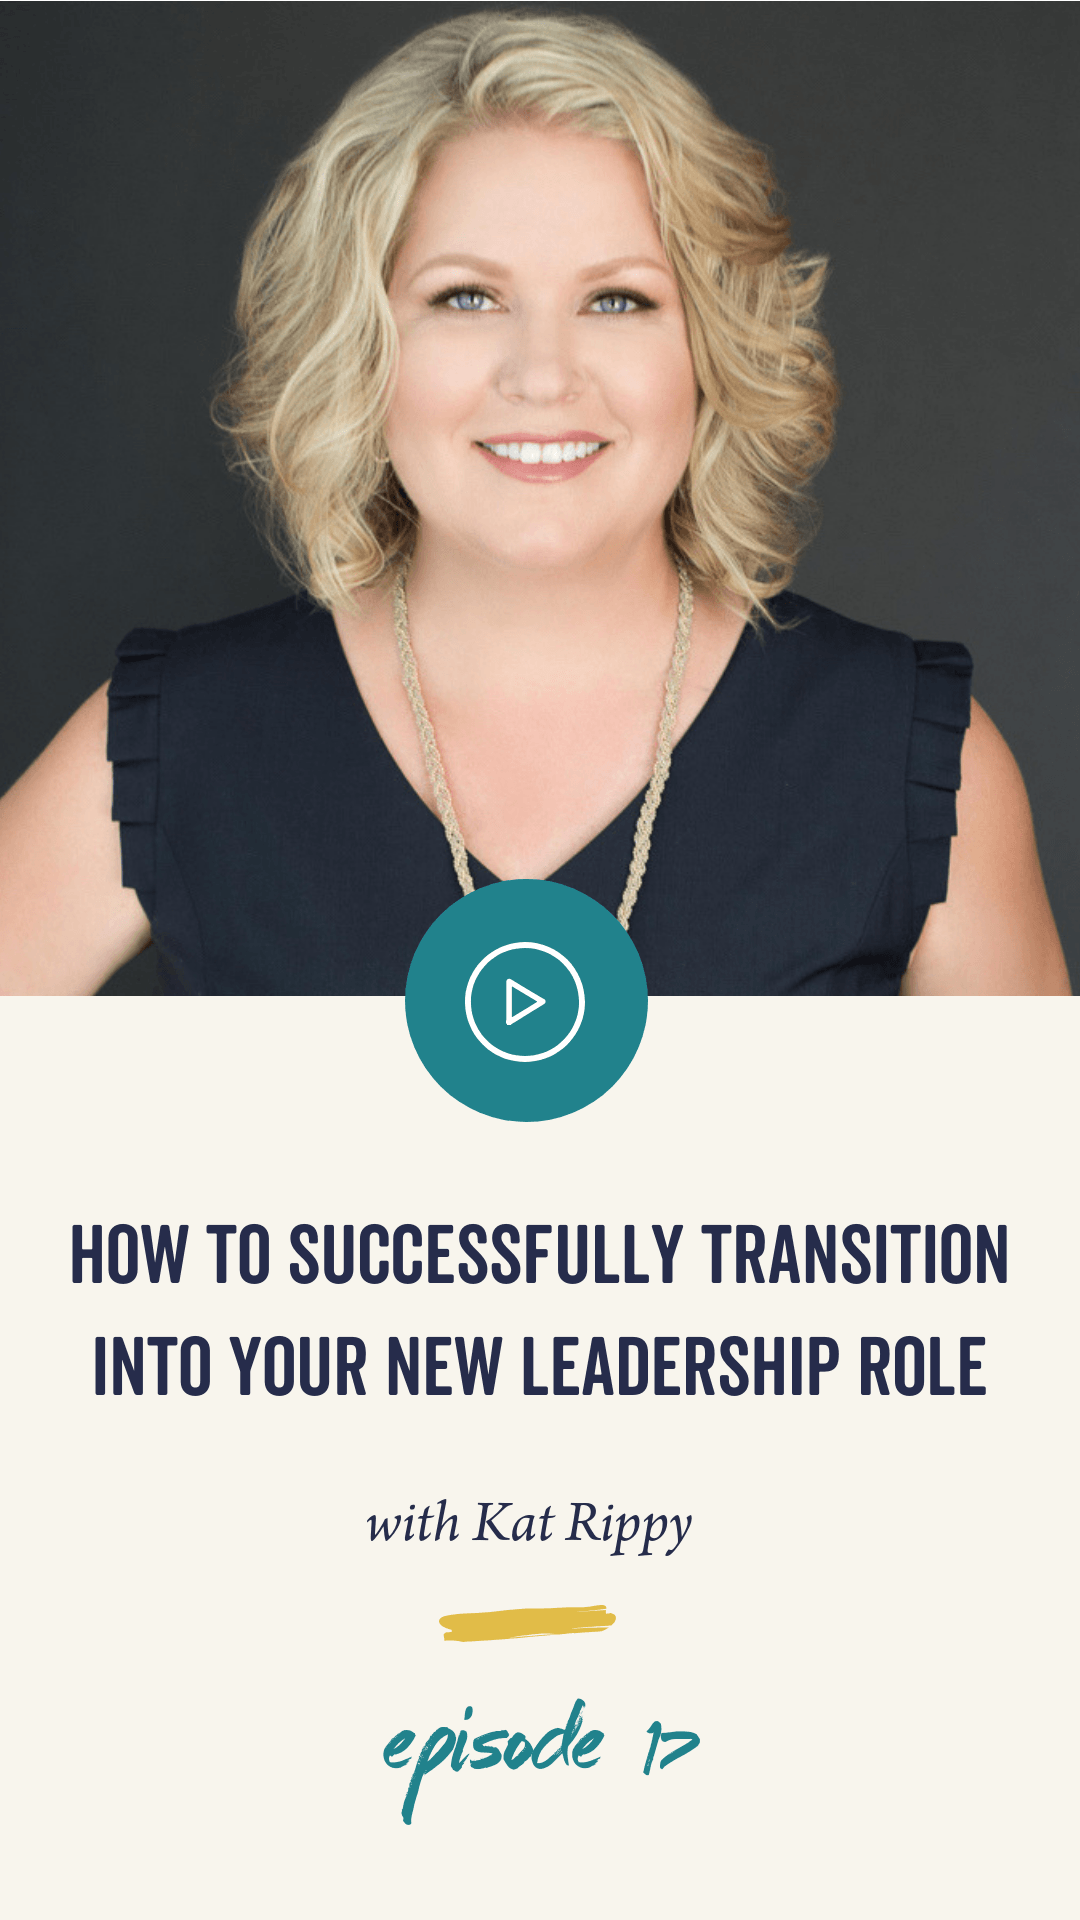 Episode 17: How to Successfully Transition Into Your New Leadership Role